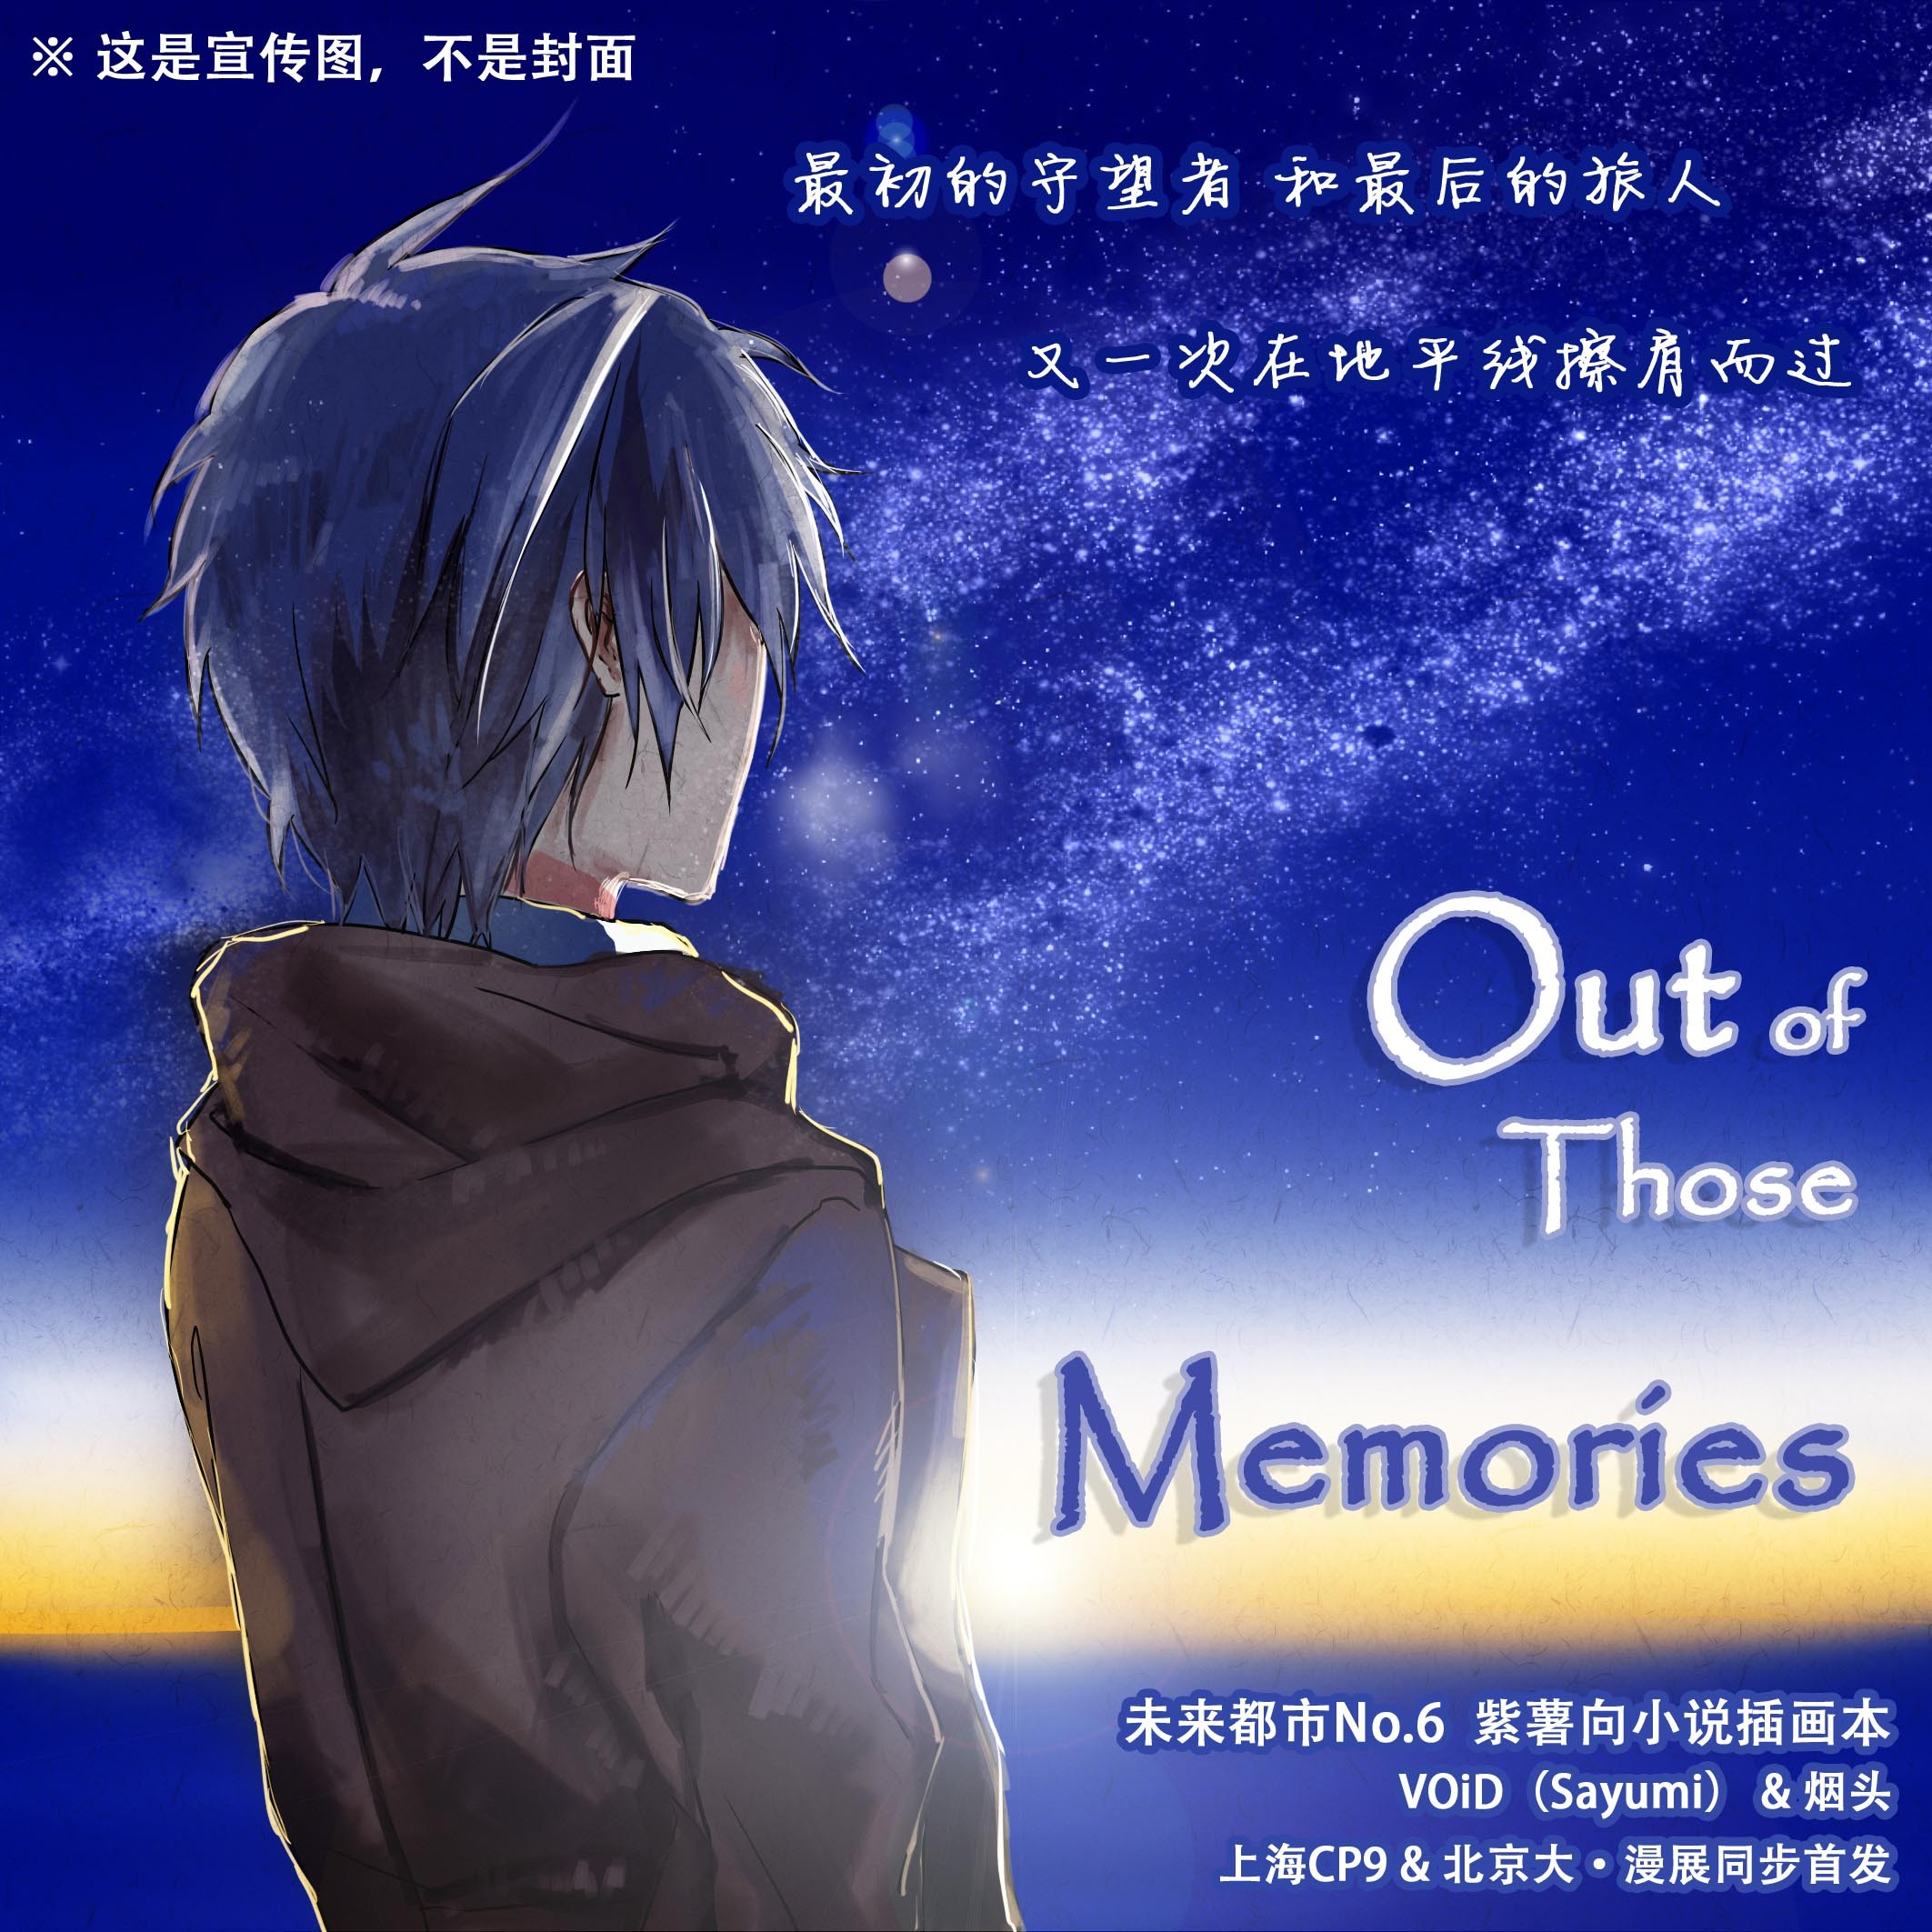 Out of Those Memories…